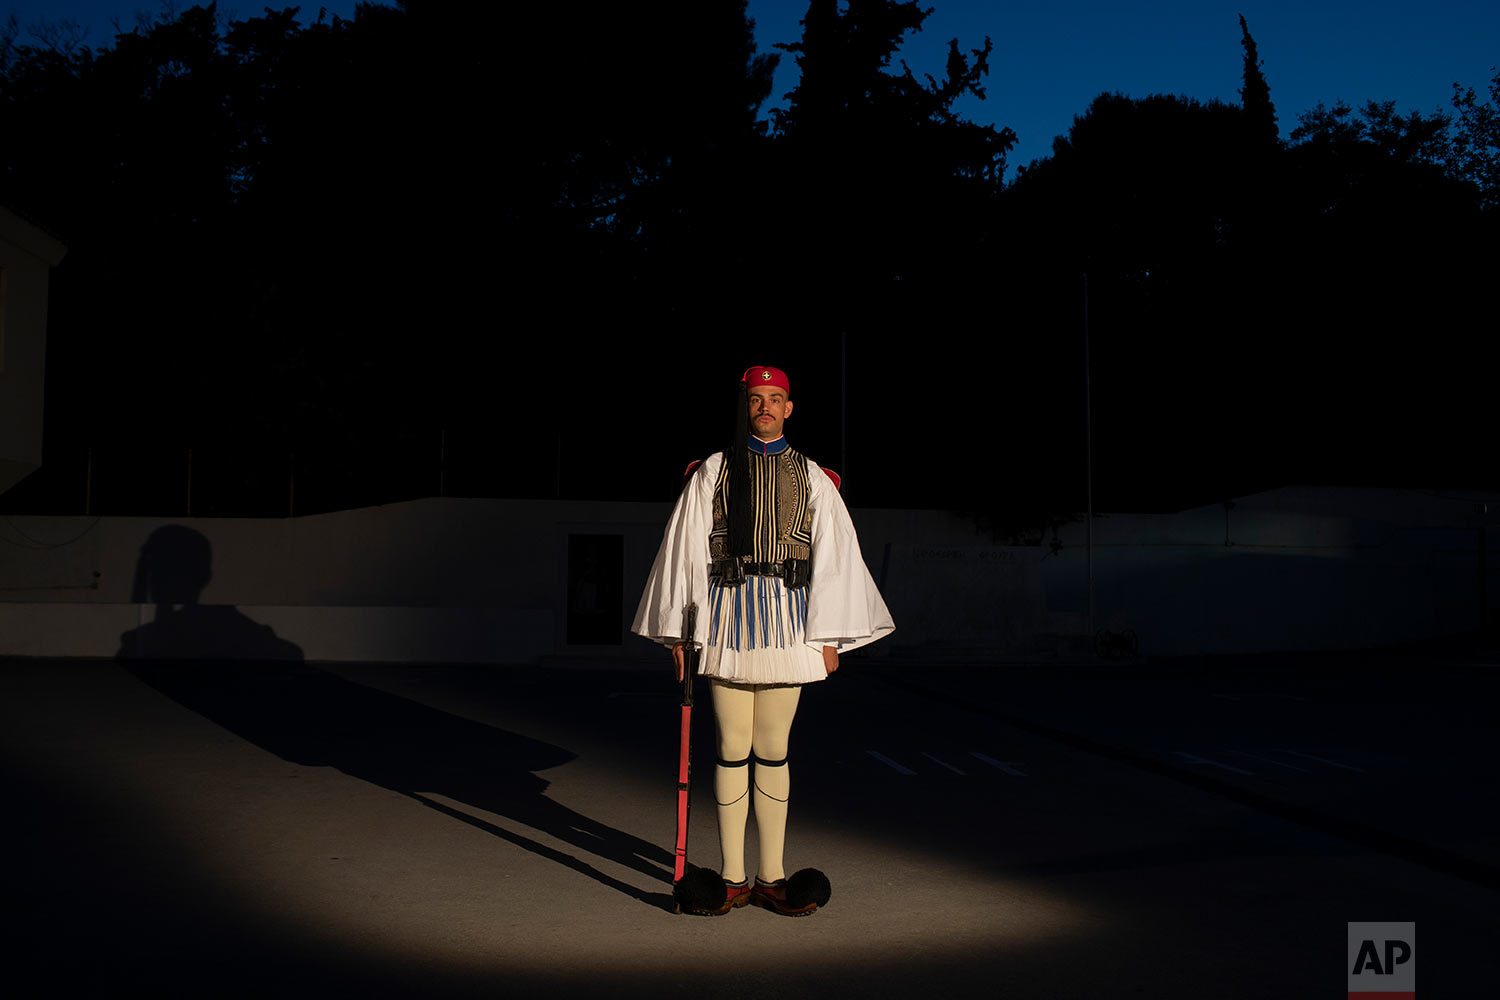 Fragkiskos Koppola, a 24- year-old member of the Presidential Guard poses for a photo inside the Presidential Guards barracks in Athen. (AP Photo/Petros Giannakouris)